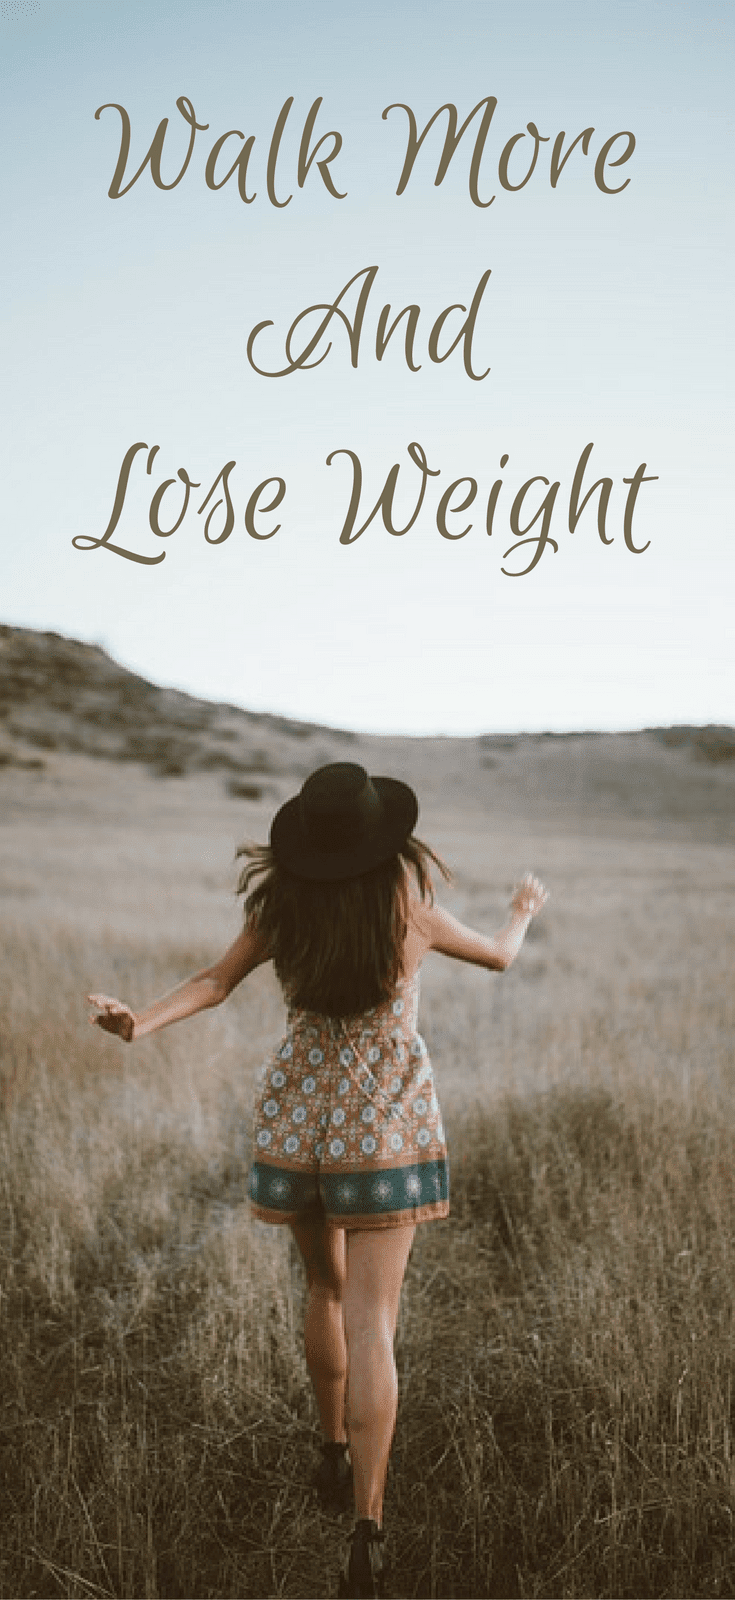 Walk More And Lose Weight